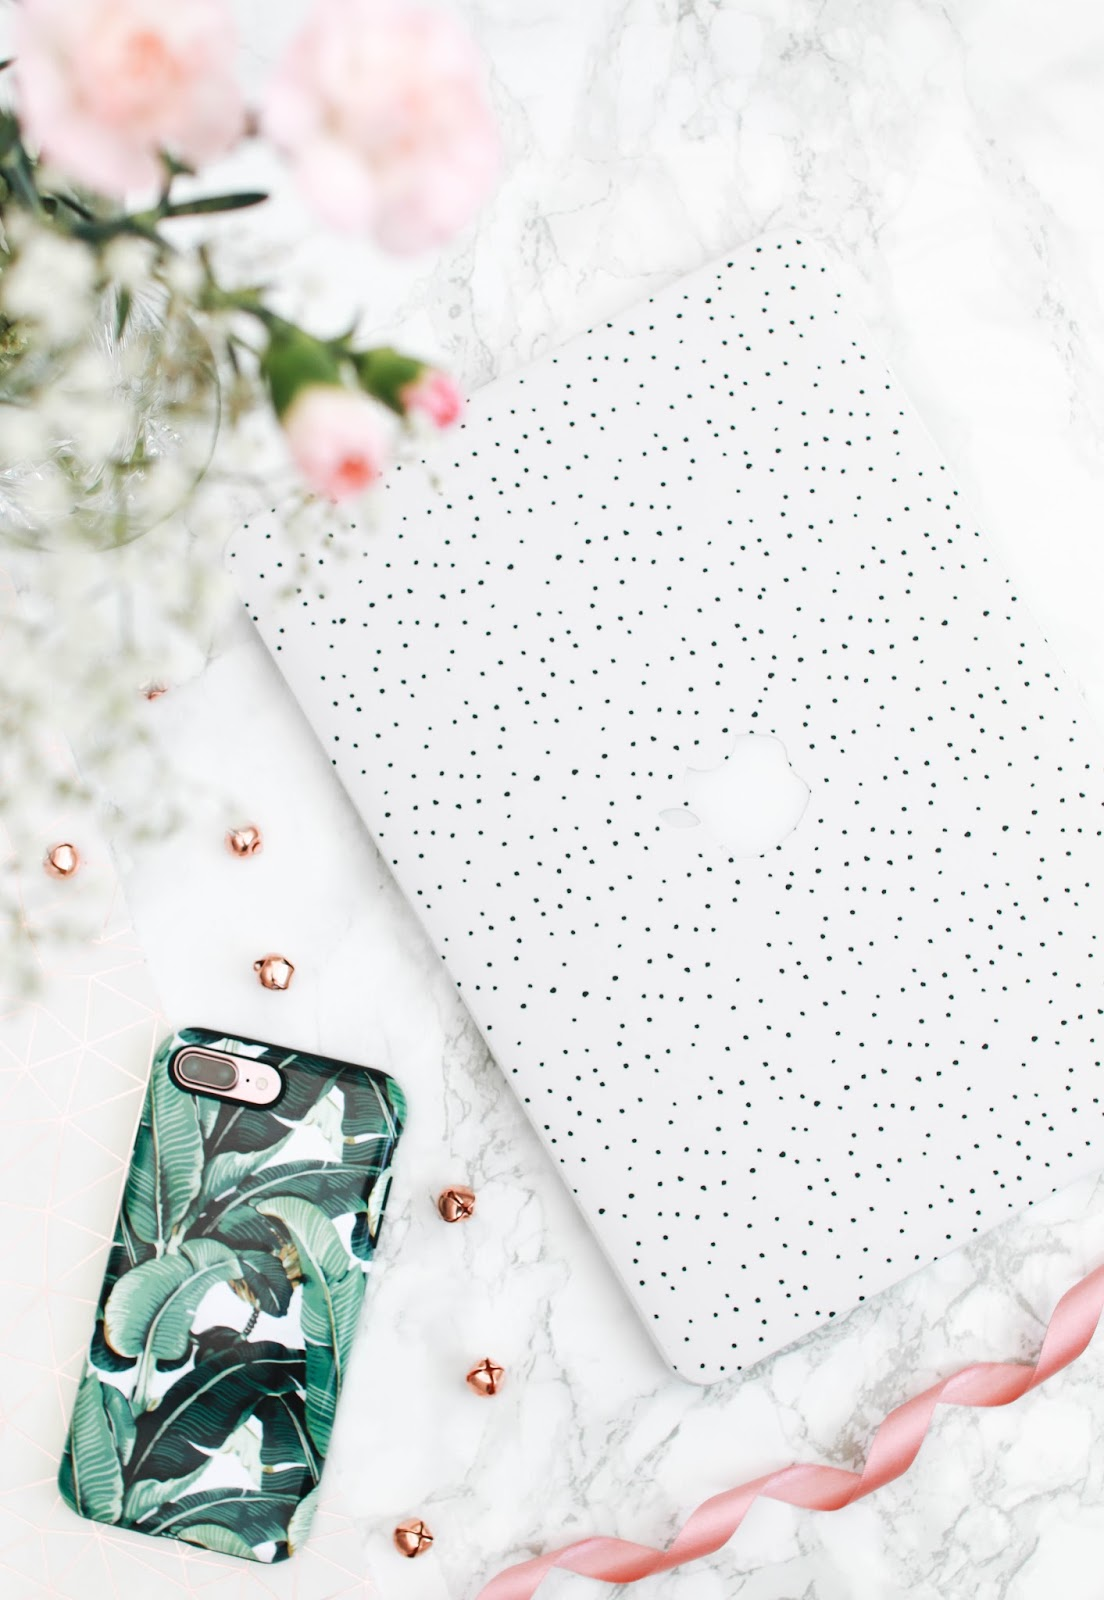 caseapp, collaboration, blogging collaboration, banana leaf print, dotty print, iphone case, laptop skin, macbook skin, phone case, iphone 7 plus case, flatlay, lifestyle blogger, fashion blogger, beauty blogger, forever september,